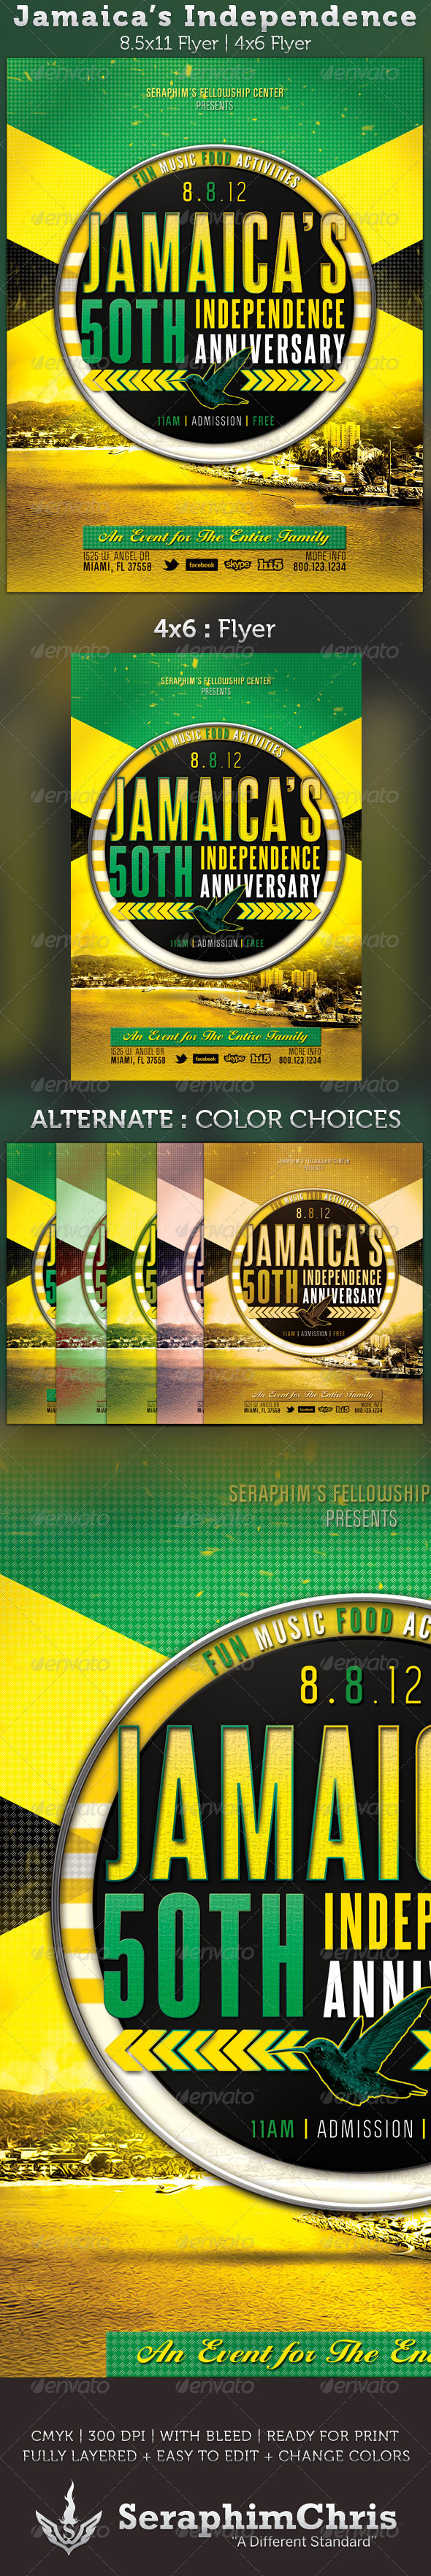 Jamaica's Independence Flyer Template - Church Flyers